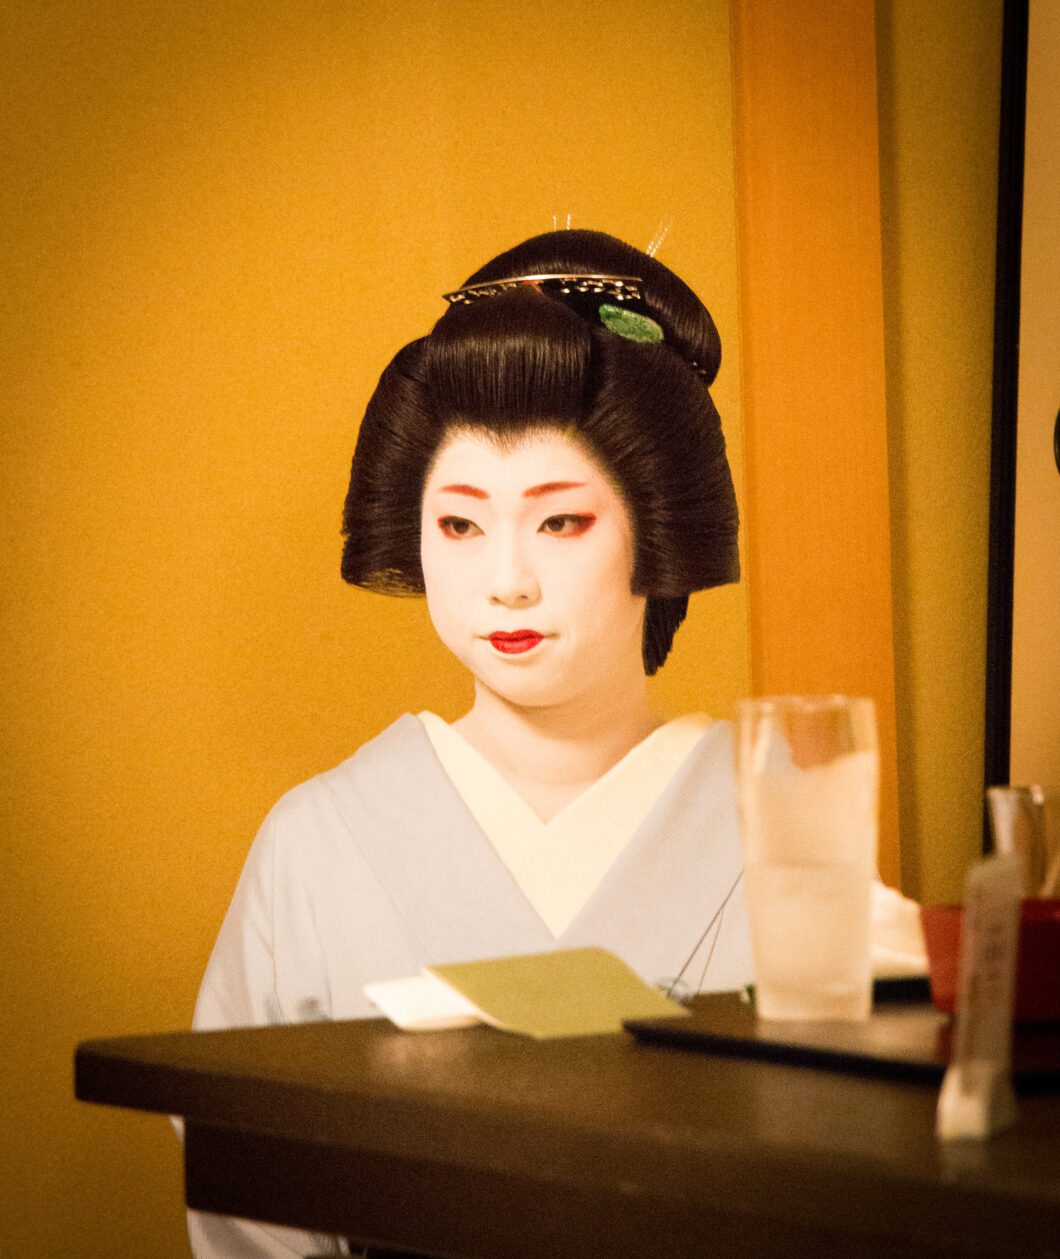 How to Spend an Evening with a Geisha